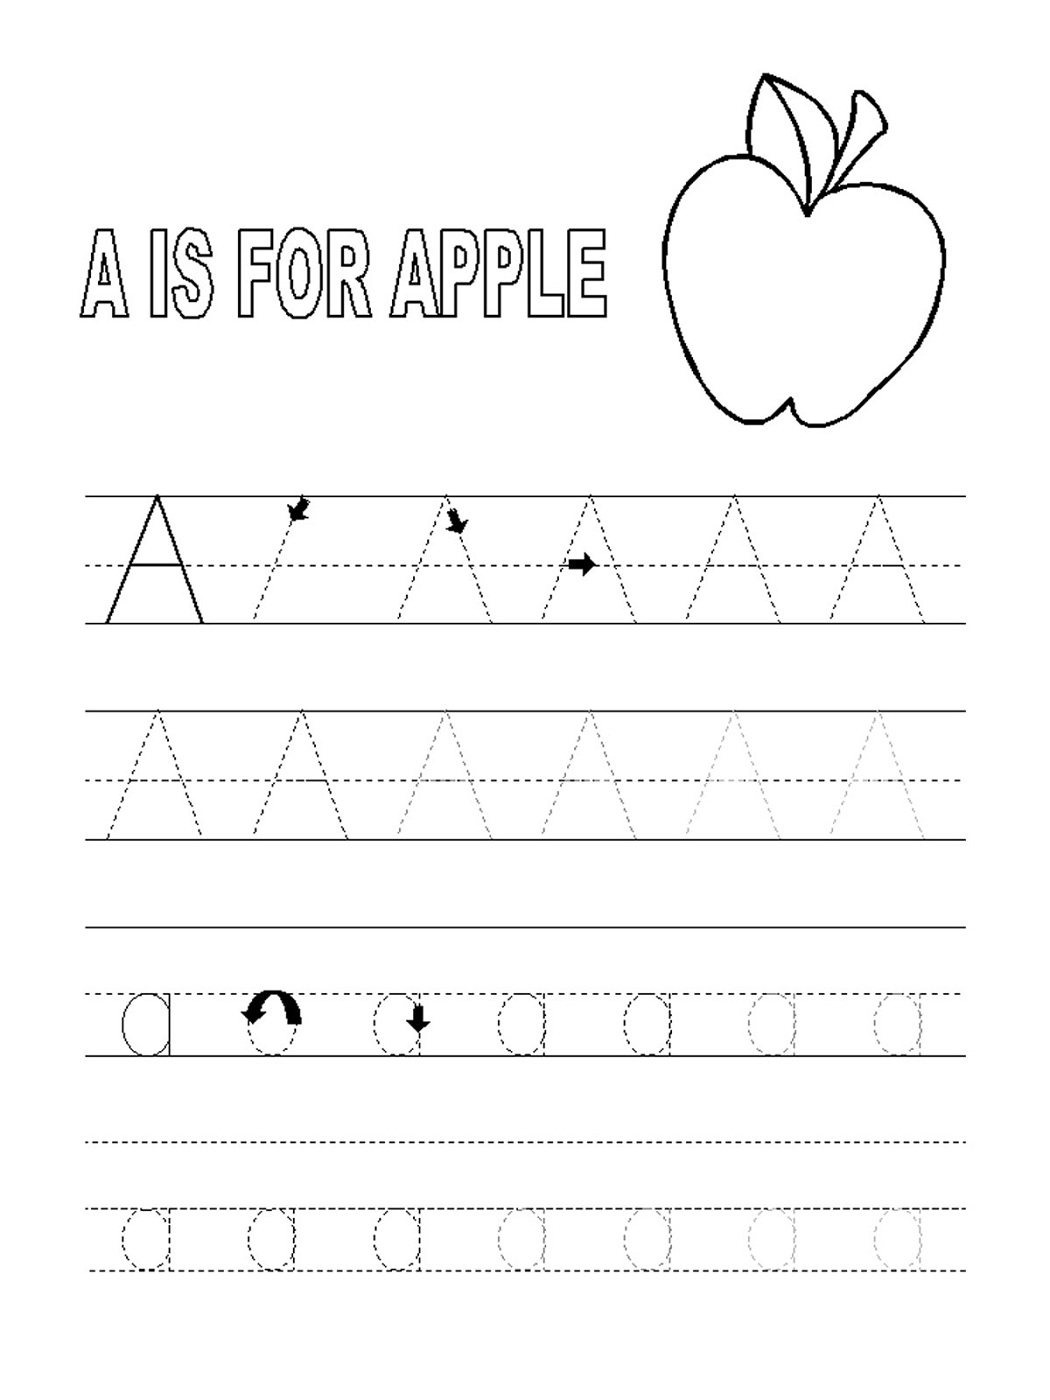 Year Old Worksheets Printable | Activity Shelter